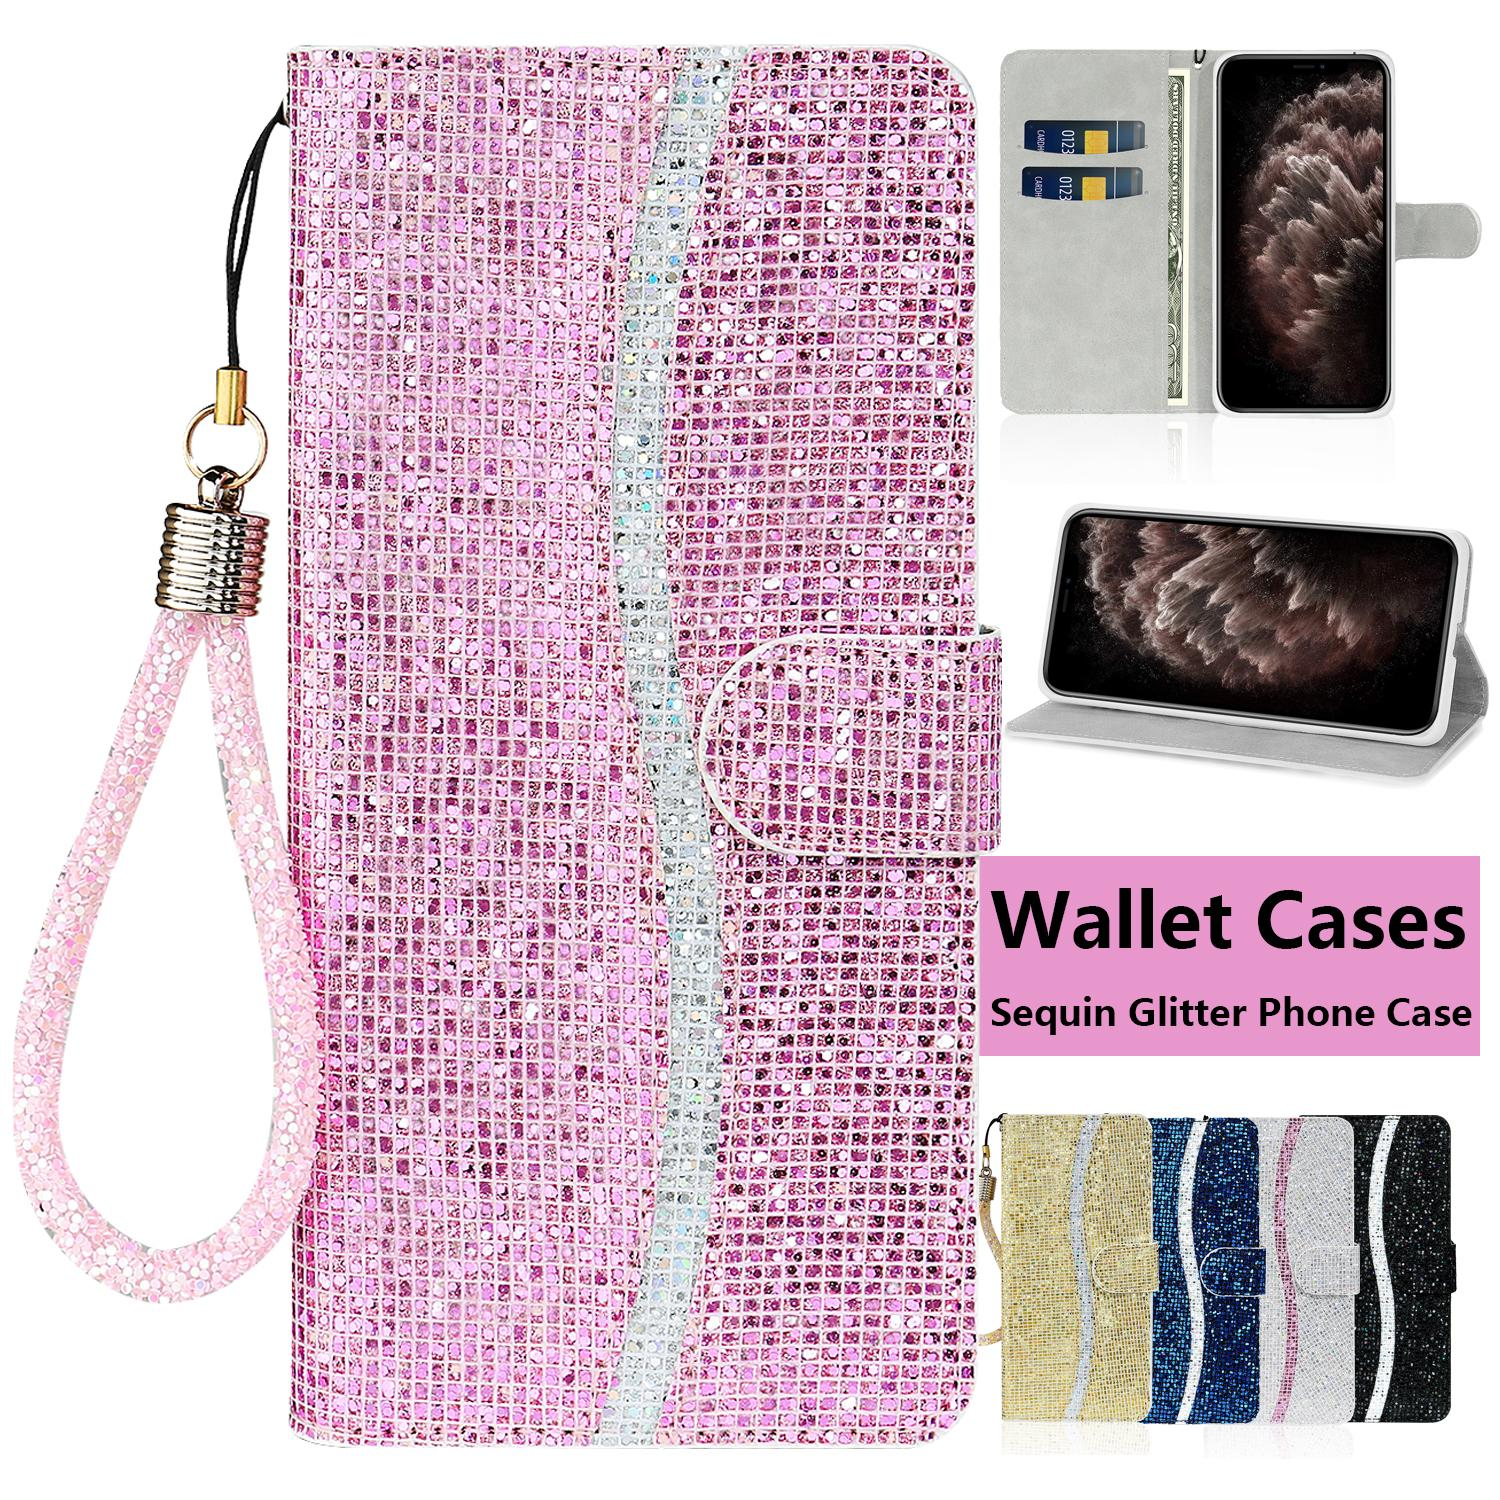 Sequin Glitter Wallet Phone Case for iPhone 11 Pro X XR XS Max 7 8 Plus Samsung Galaxy S20 Ultra Flip Multi Card Slots Flip Stand Cover Case